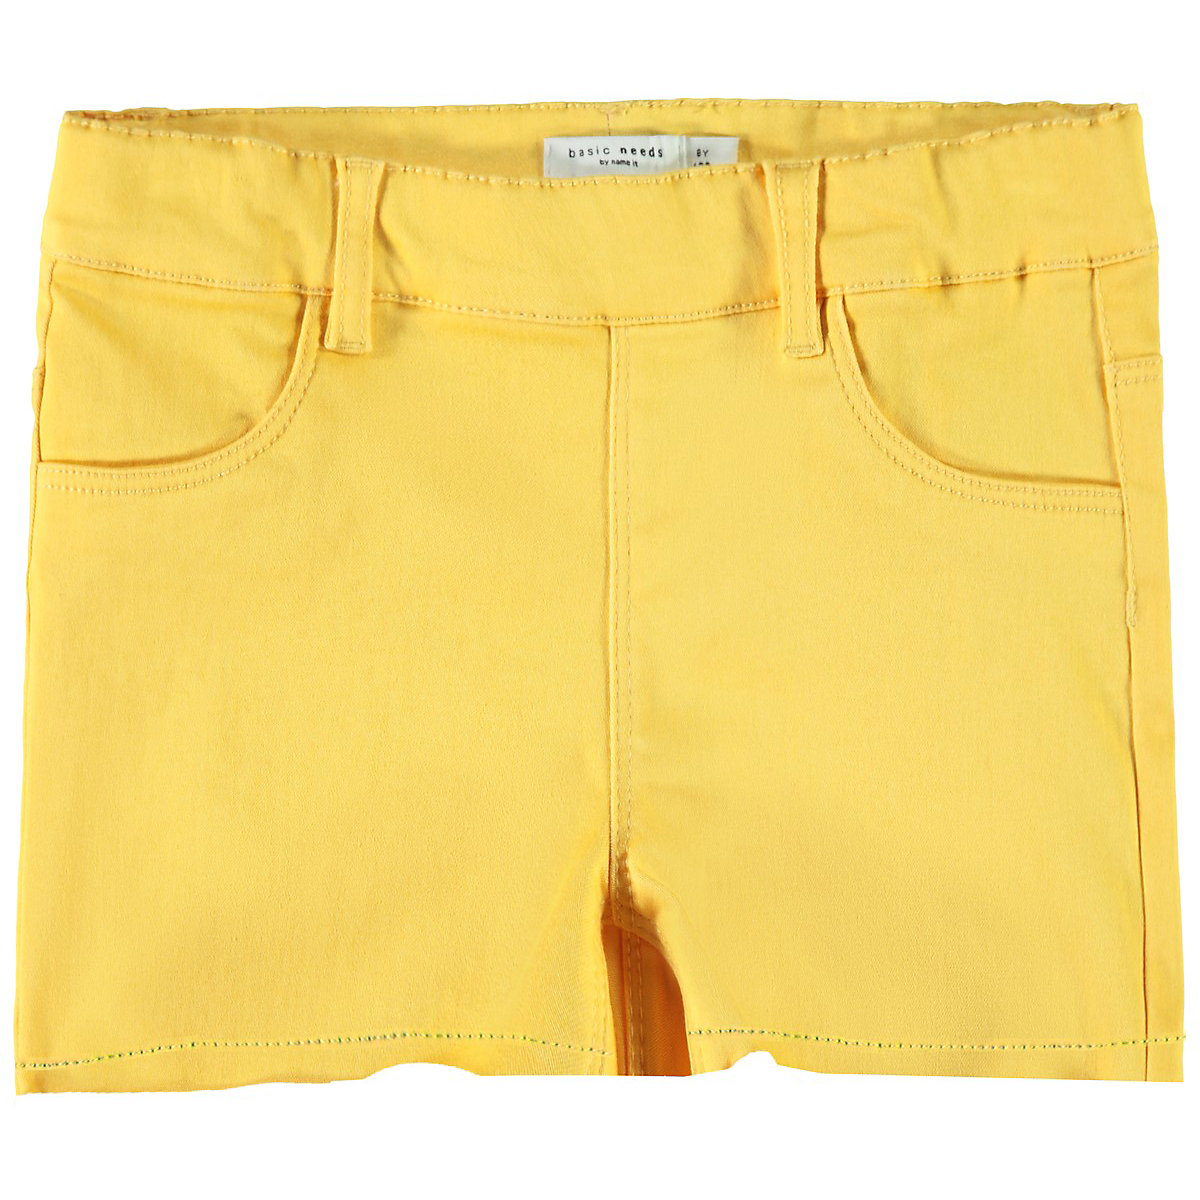 NAME IT Shorts 10624822 for boys and girls child sport for teenagers clothes Cotton Elastic Waist Girls girls plain elastic waist shorts